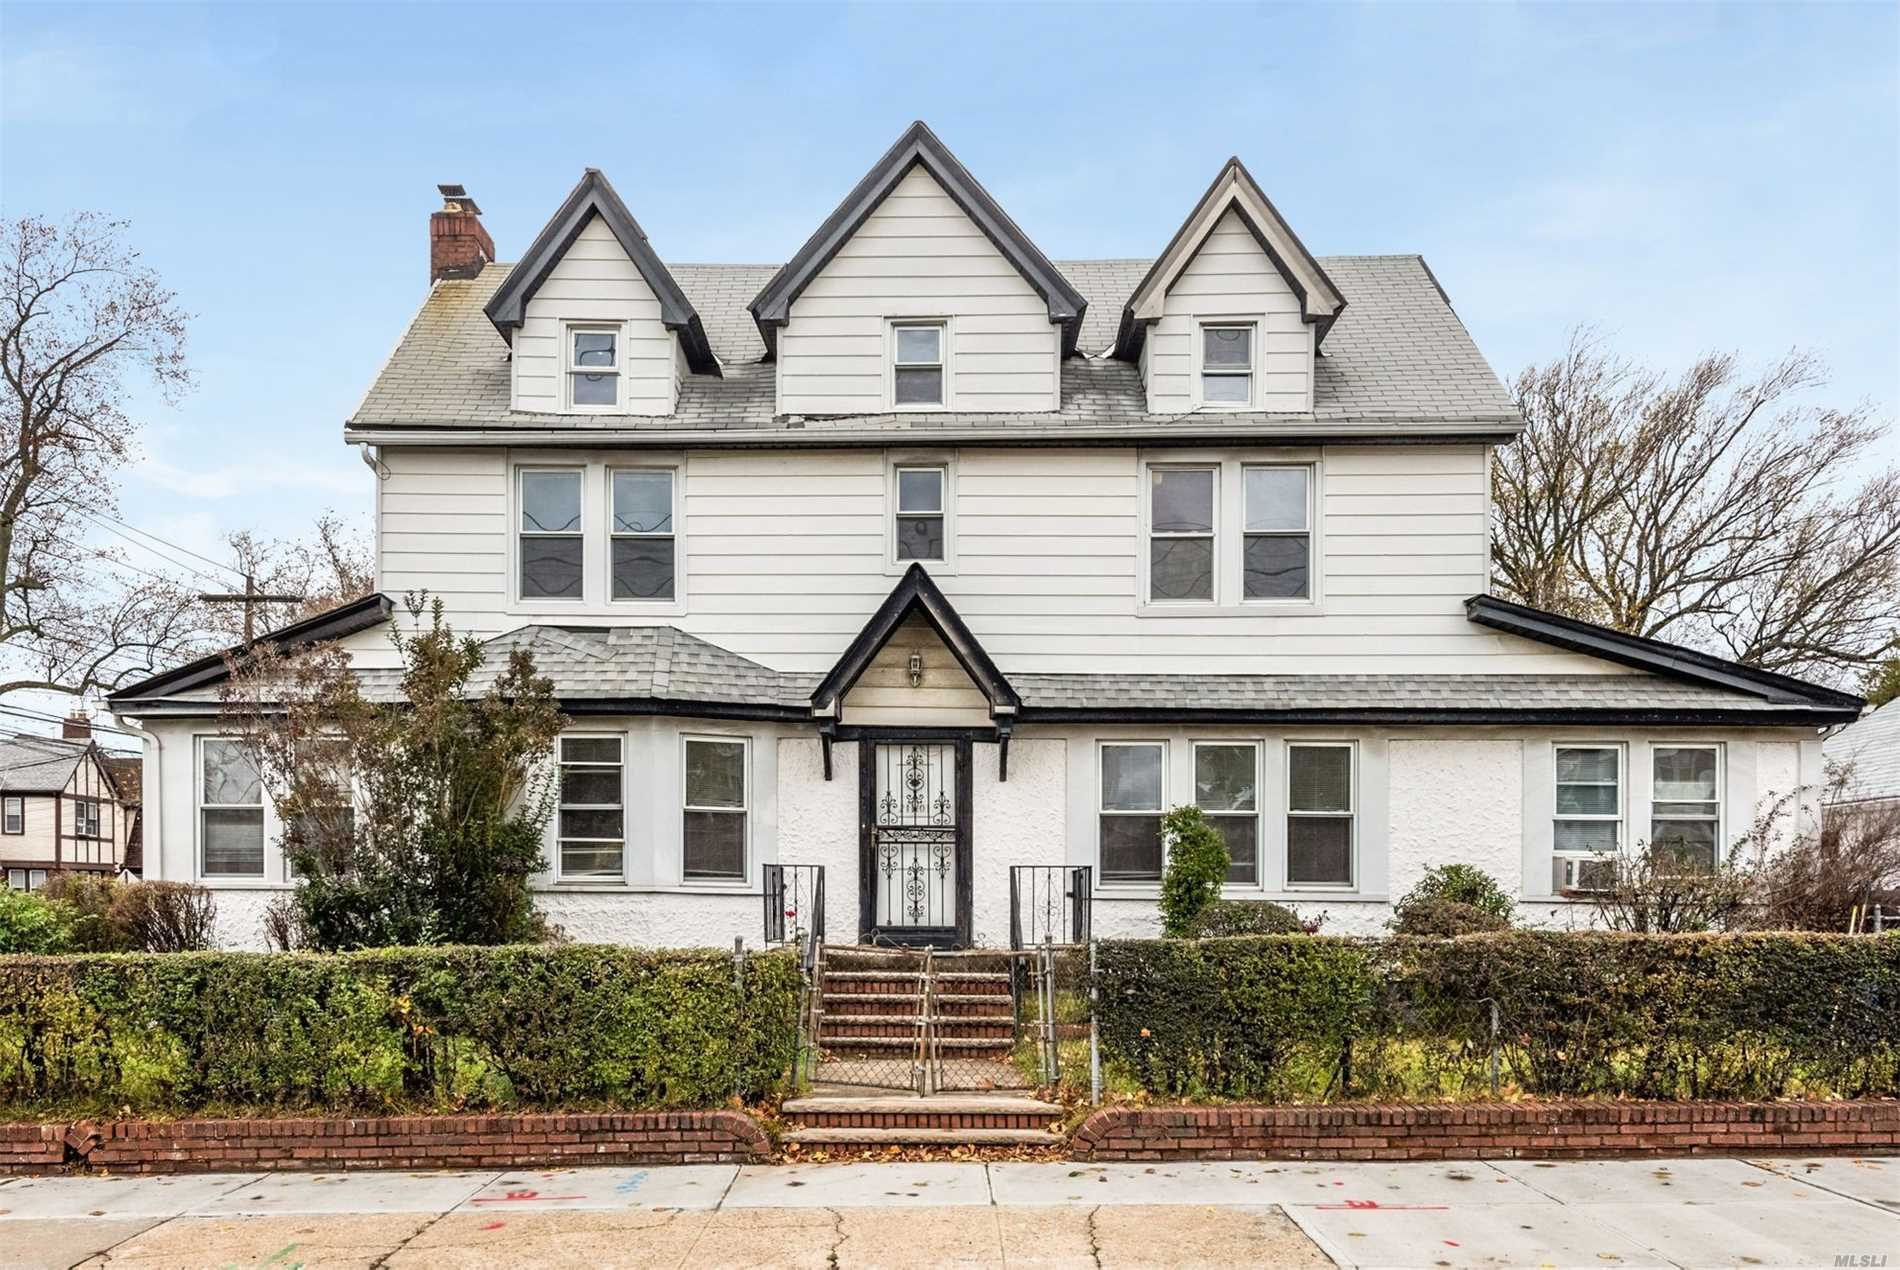 Large Well Kept Corner Colonial Home With 5 Bedrooms, 3.5 Baths, Living Room, Dining Room, Den And Eat-In Kitchen. This Home Also Features A Full Basement, 2 Car Detached Garage And A Private Driveway.